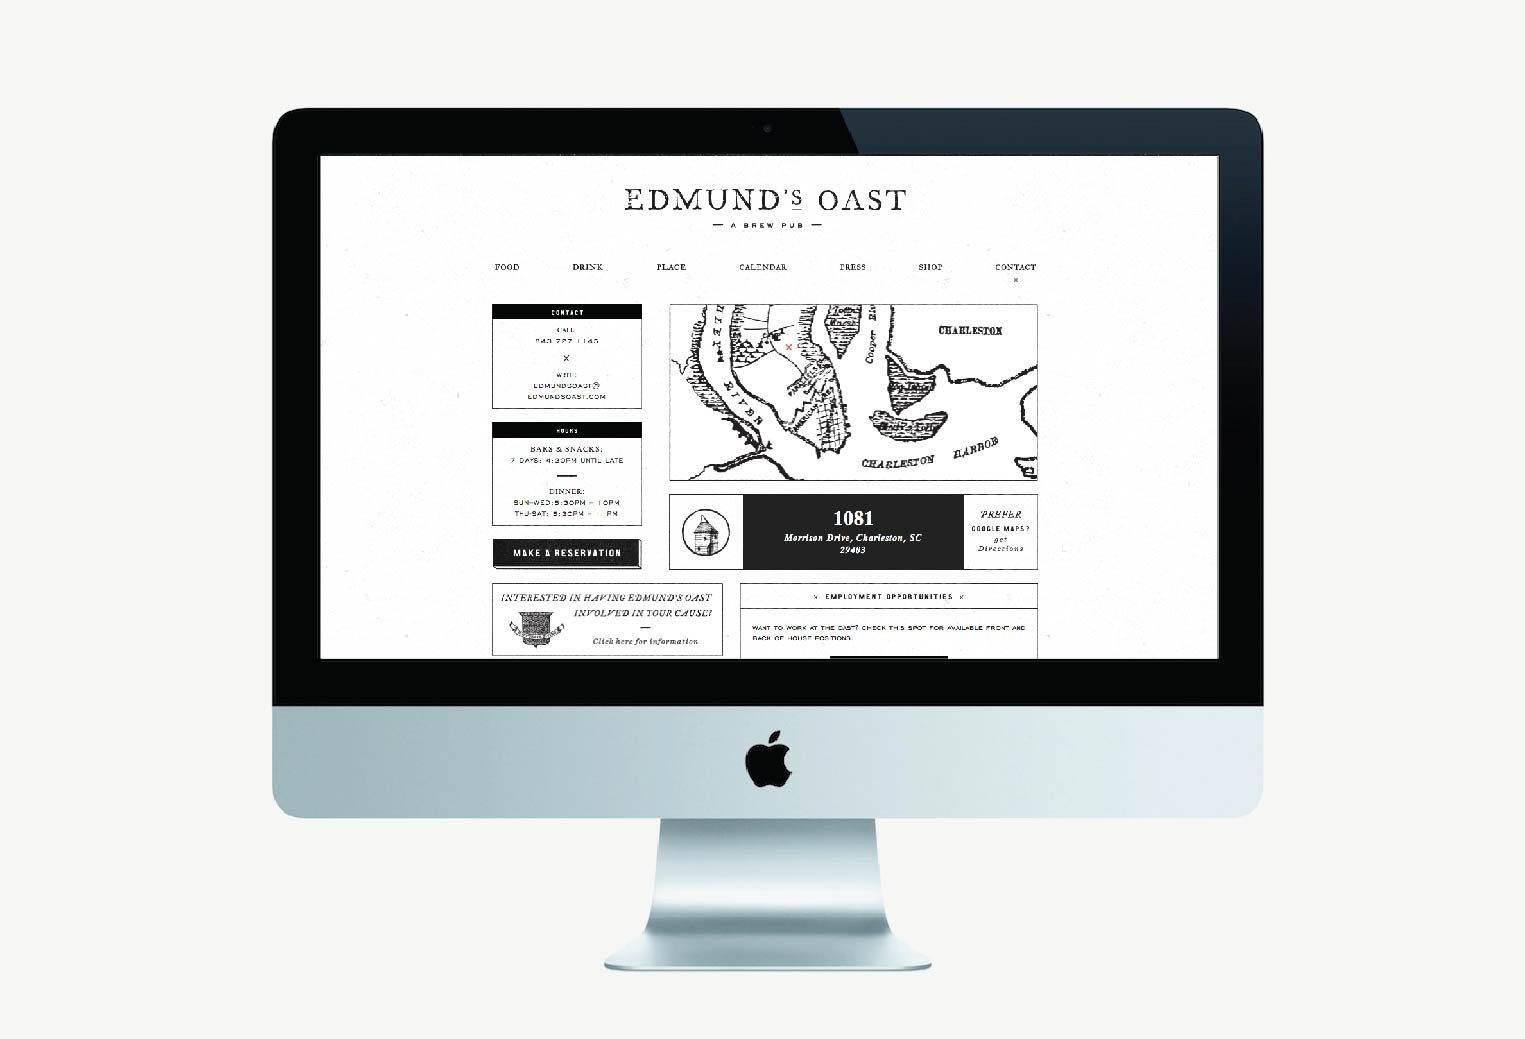 EdmundsOast_website-04